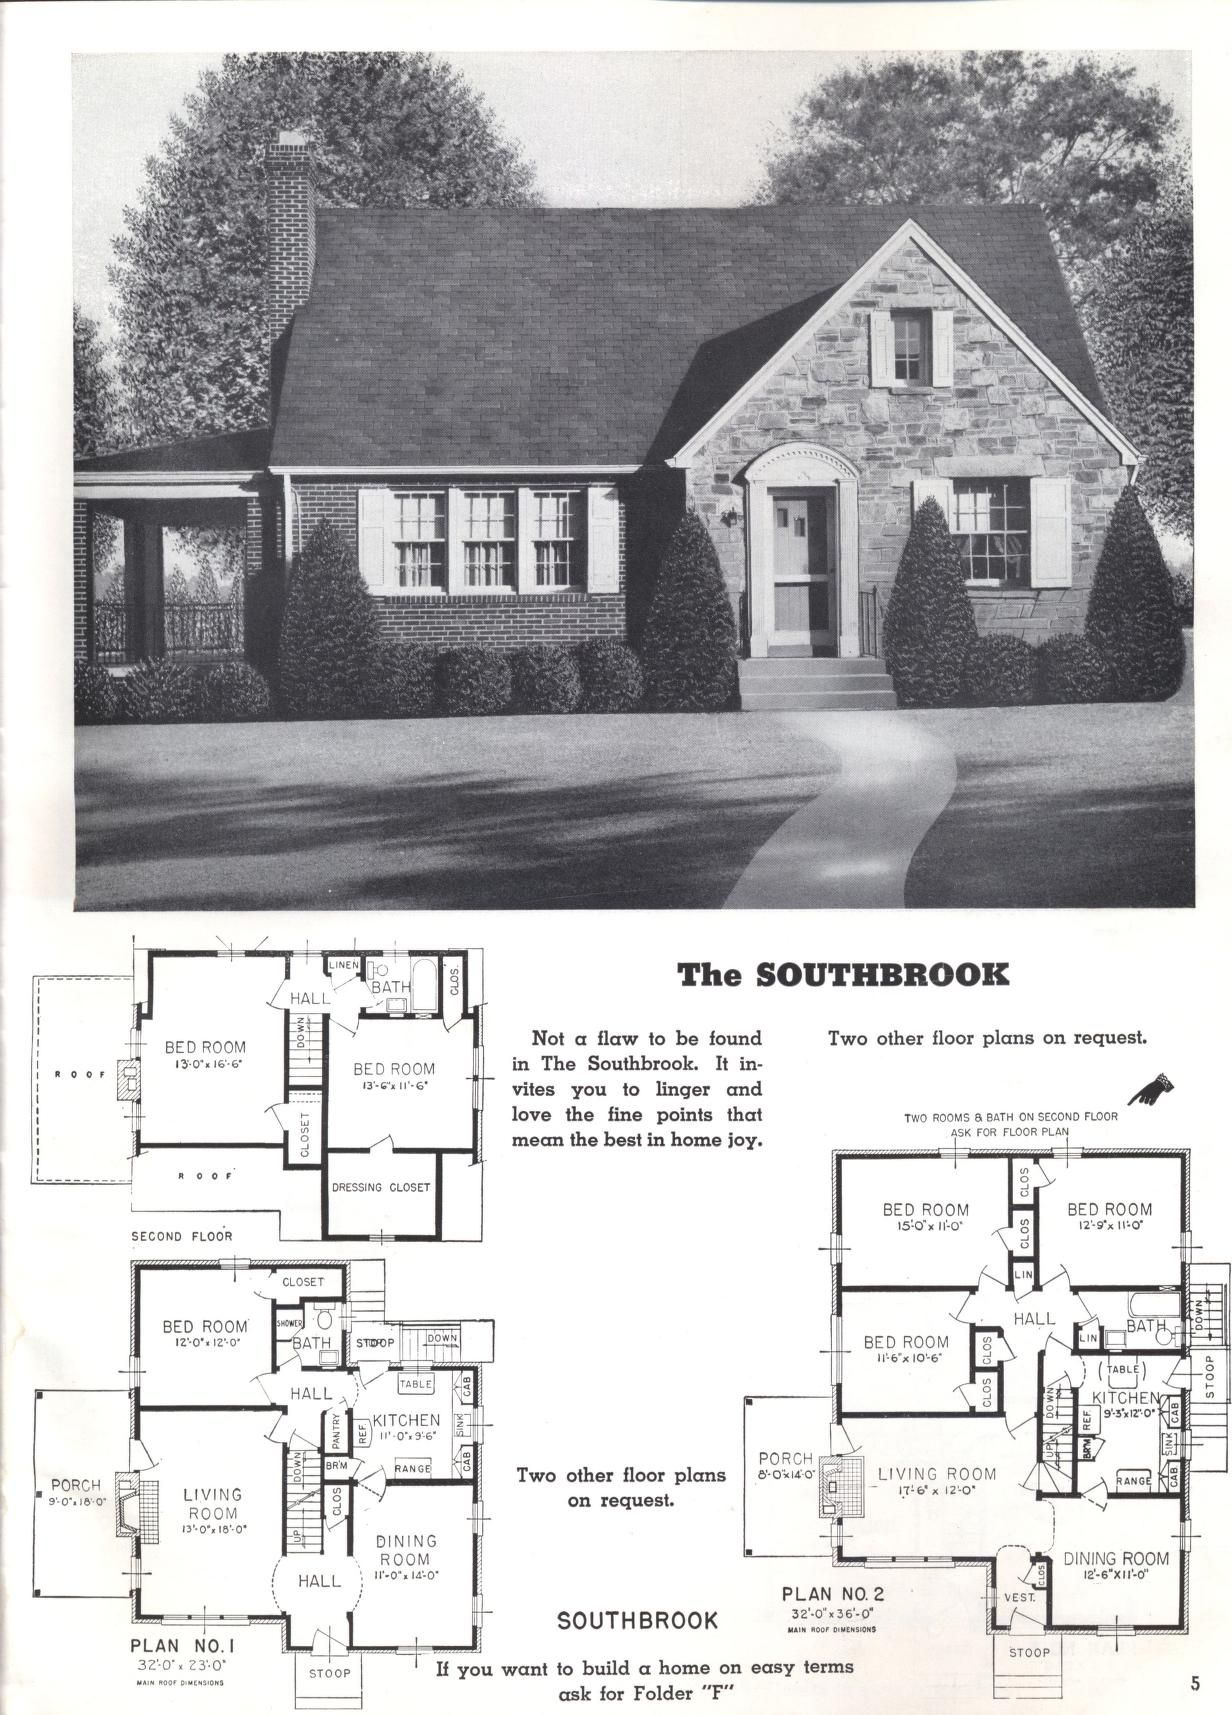 Better Homes At Lower Cost A 50 By Standard Homes Co Publication Date 1950 Vintage House Plans House Plans Floor Plans